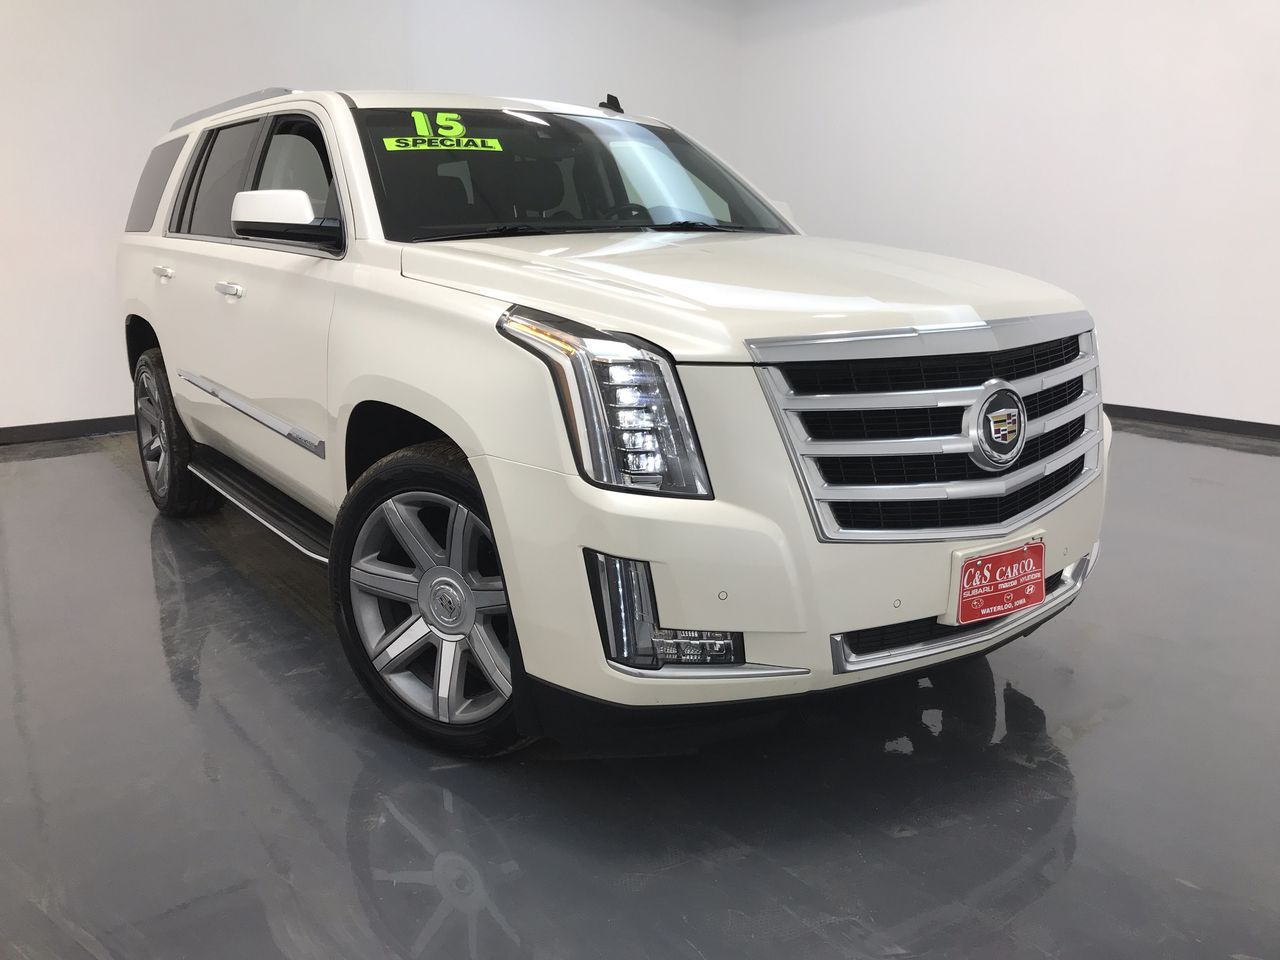 2015 Cadillac Escalade Luxury 4WD  - 16157  - C & S Car Company